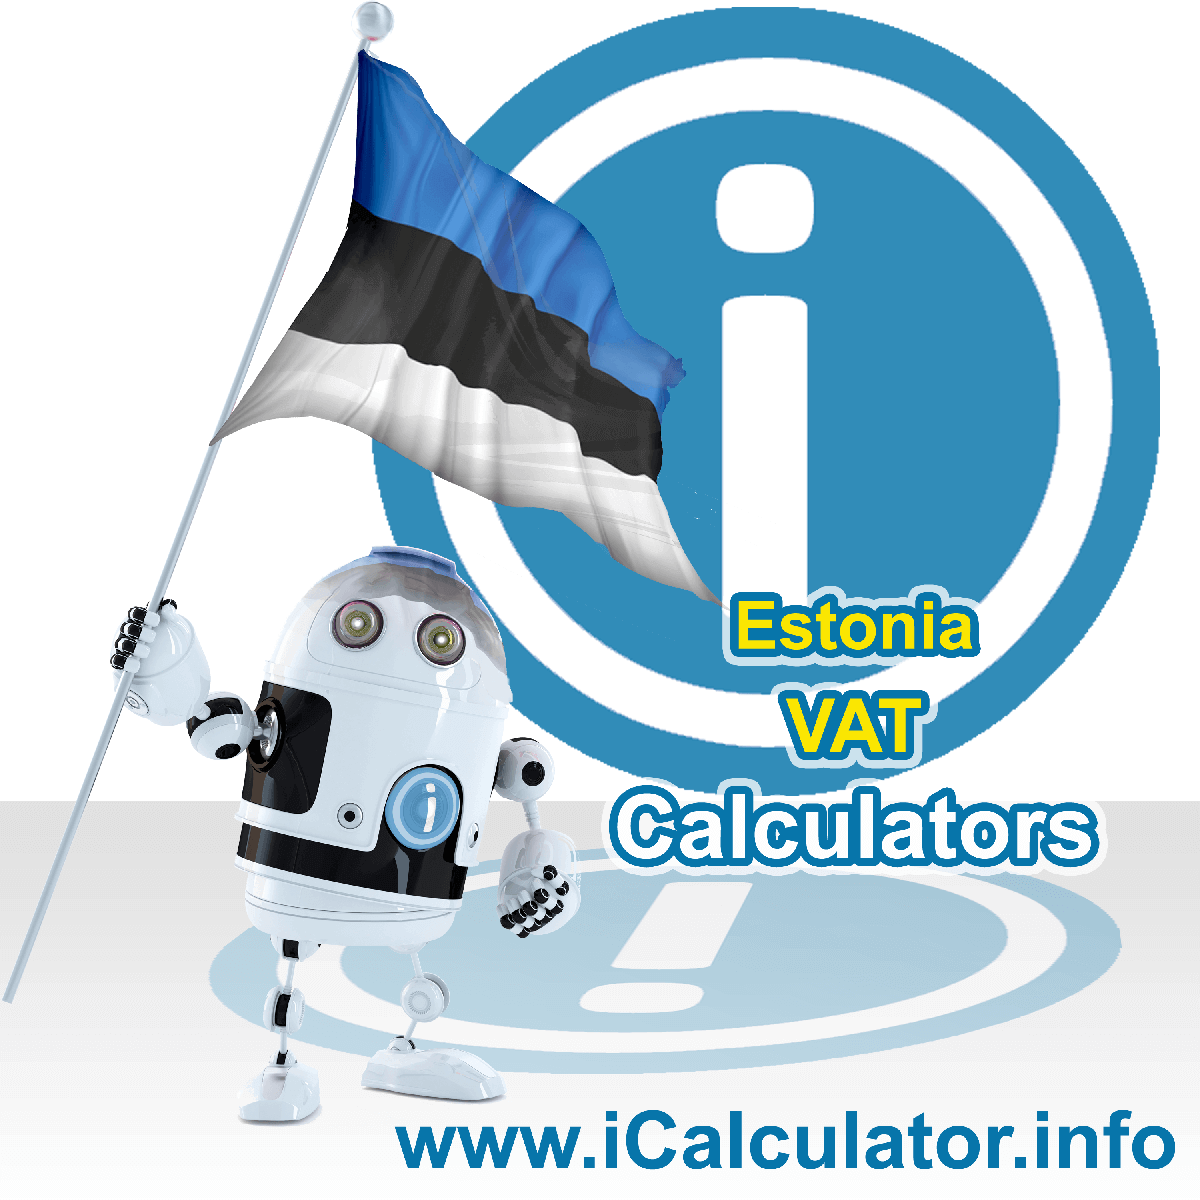 Estonia VAT Calculator. This image shows the Estonia flag and information relating to the VAT formula used for calculating Value Added Tax in Estonia using the Estonia VAT Calculator in 2020